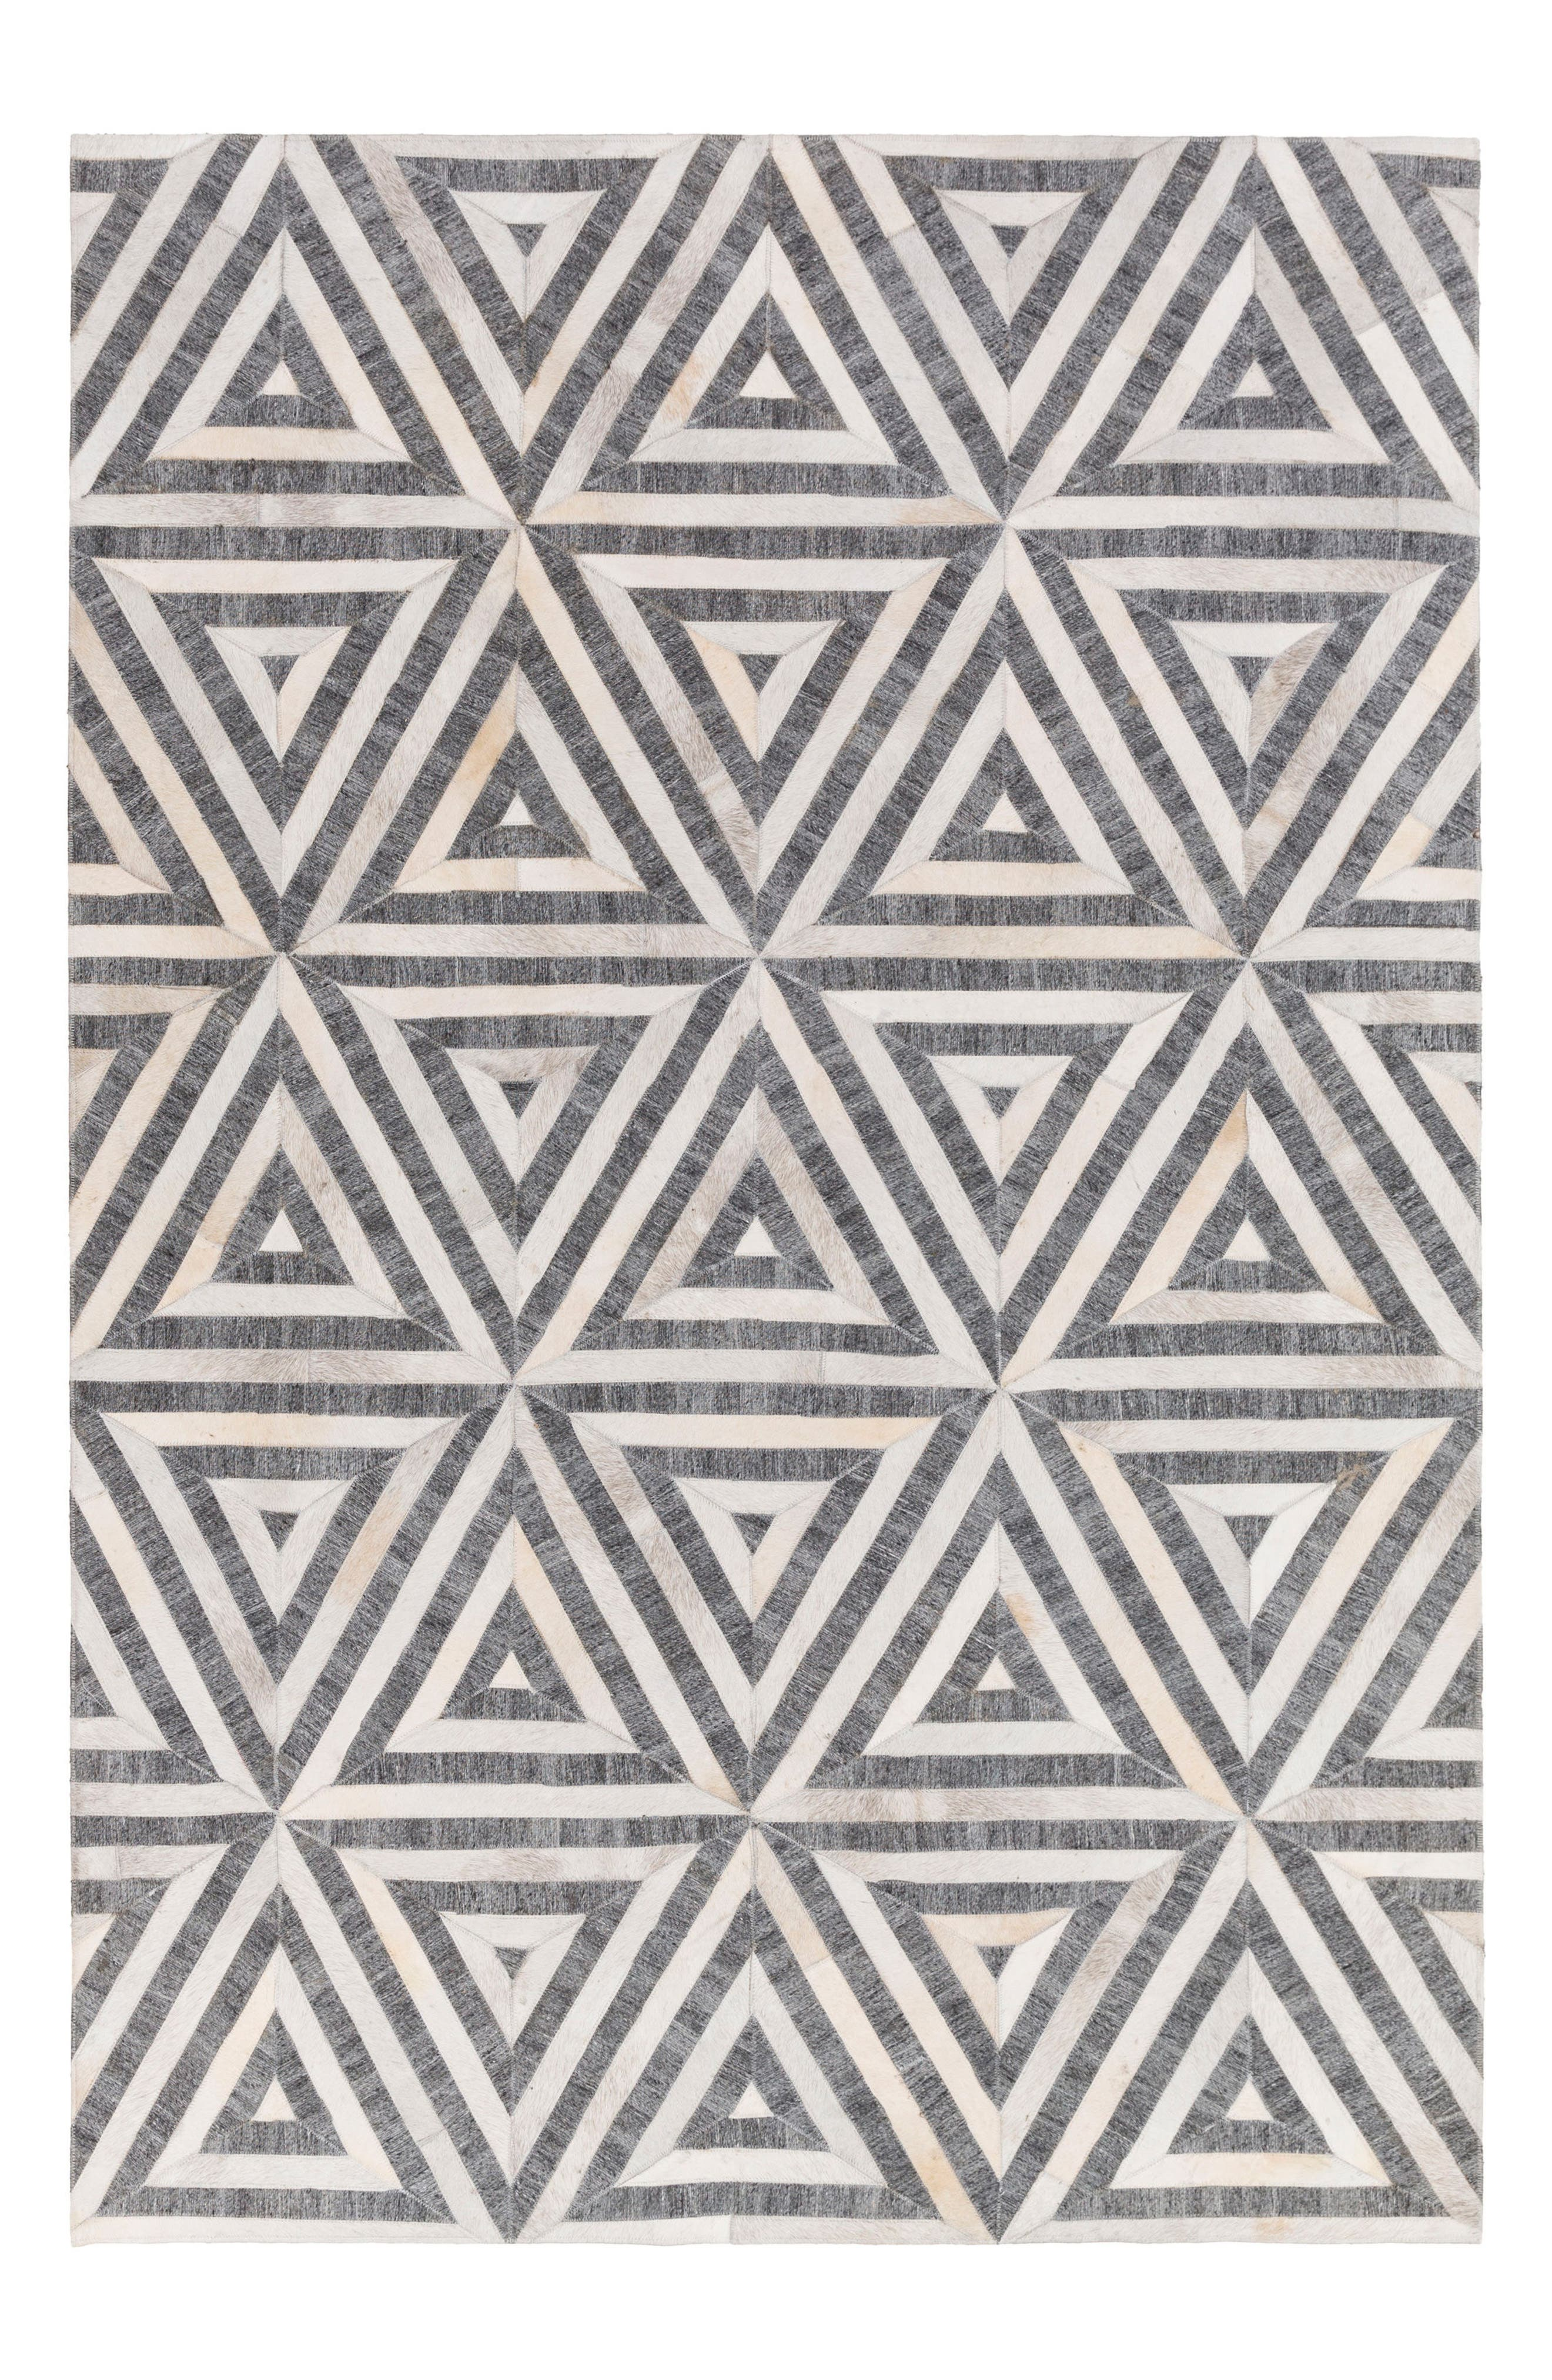 Alternate Image 1 Selected - Surya Home Medora Sophia Genuine Calf Hair Rug